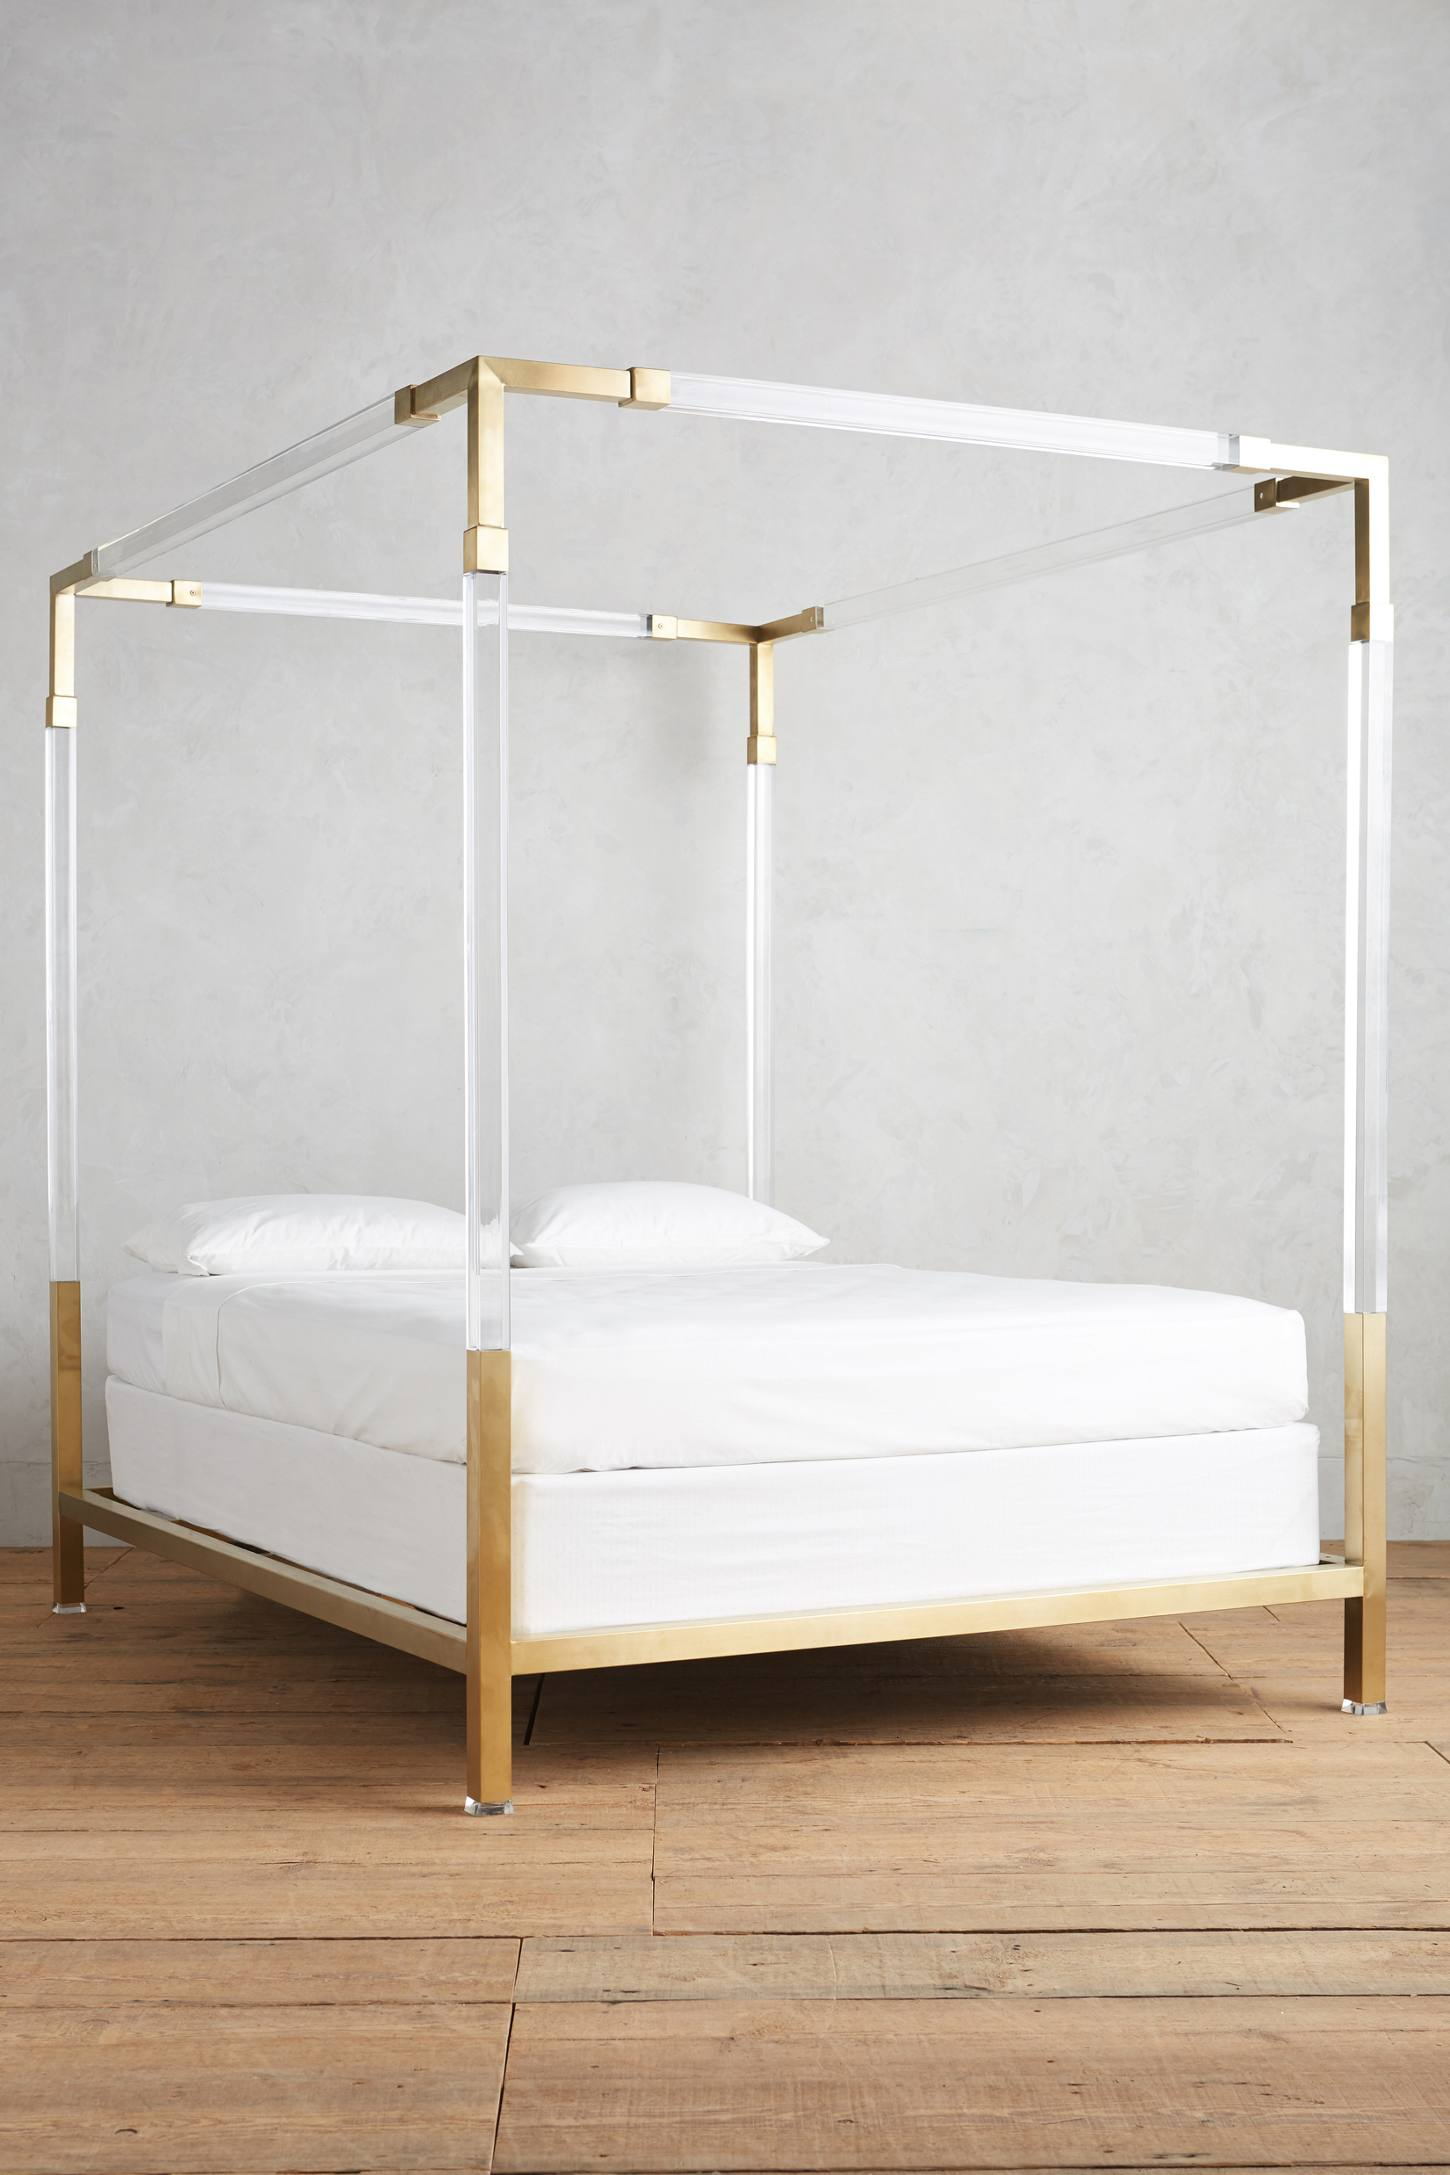 Lucite Acrylic Four Poster Bed Brass Anthropologie Katie Considers